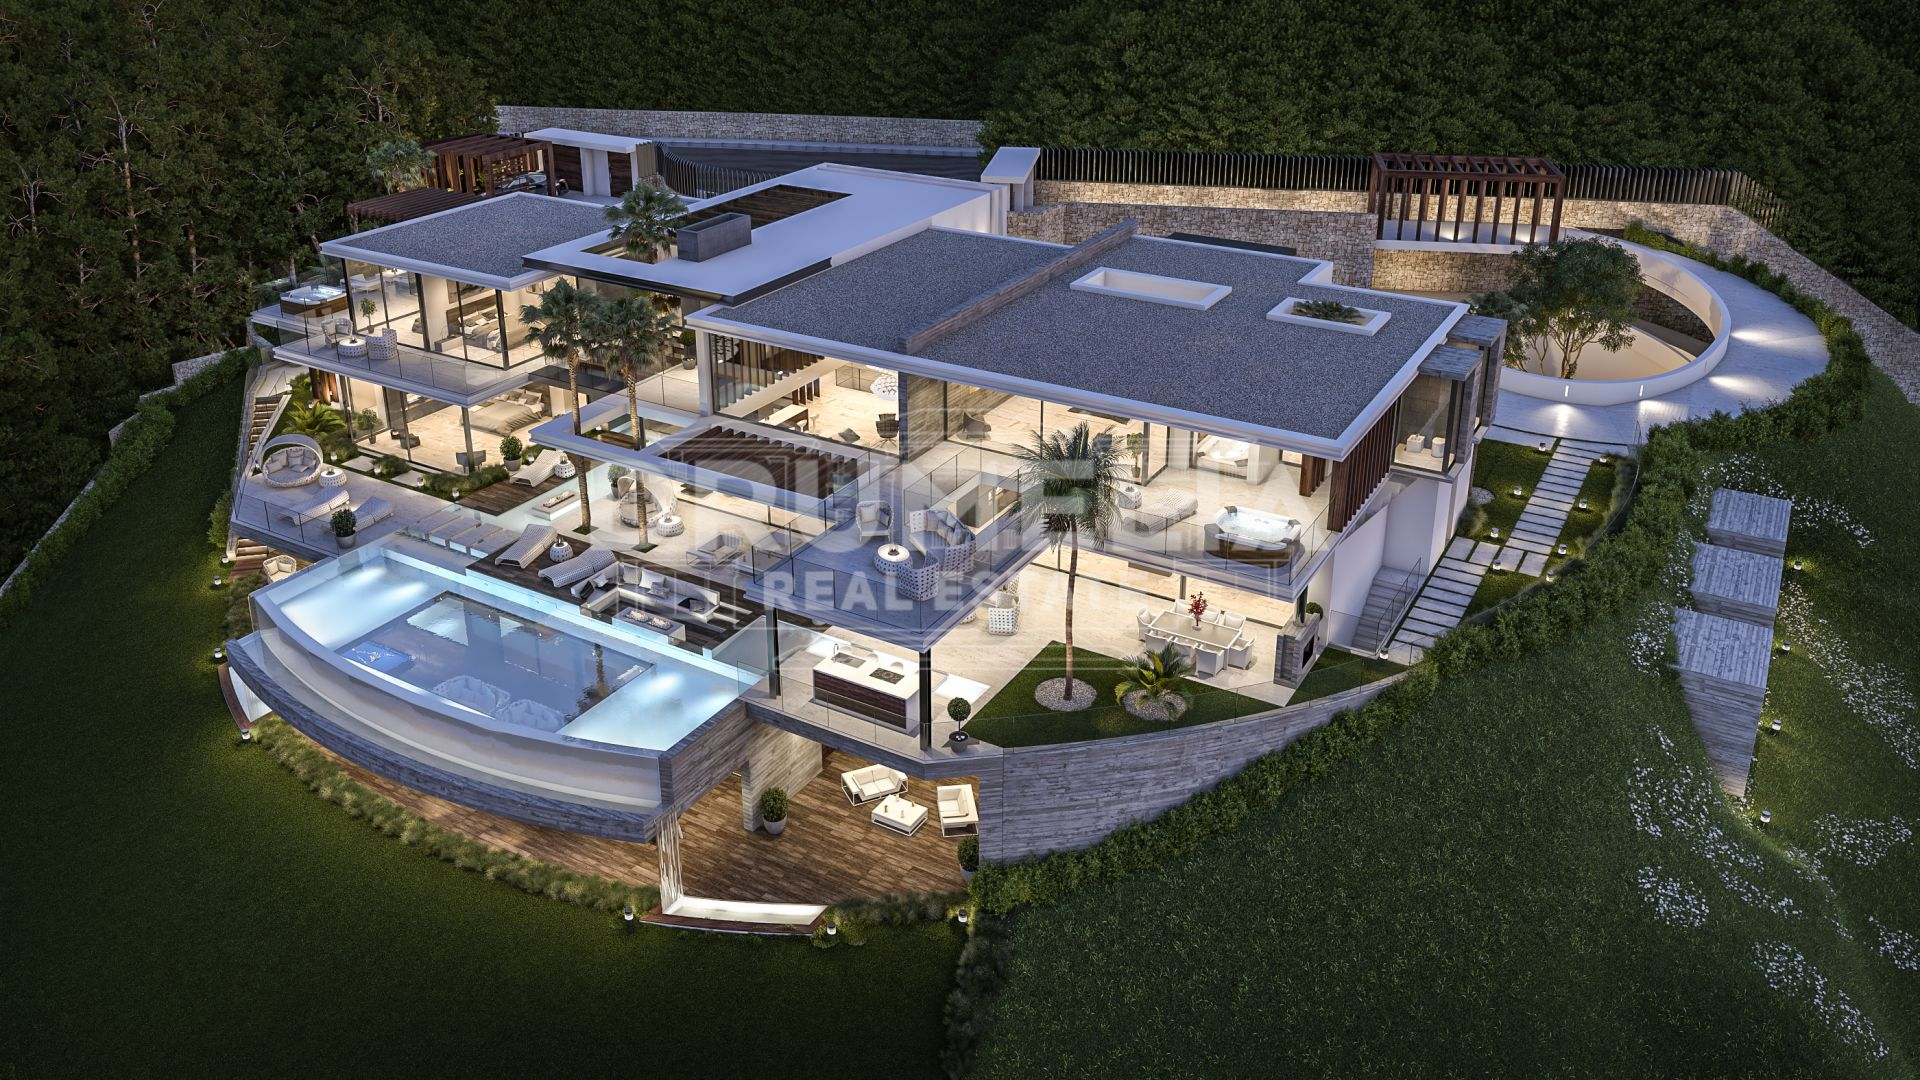 Benahavis, Exceptional Modern Luxury Villa Project, La Zagaleta, Benahavis